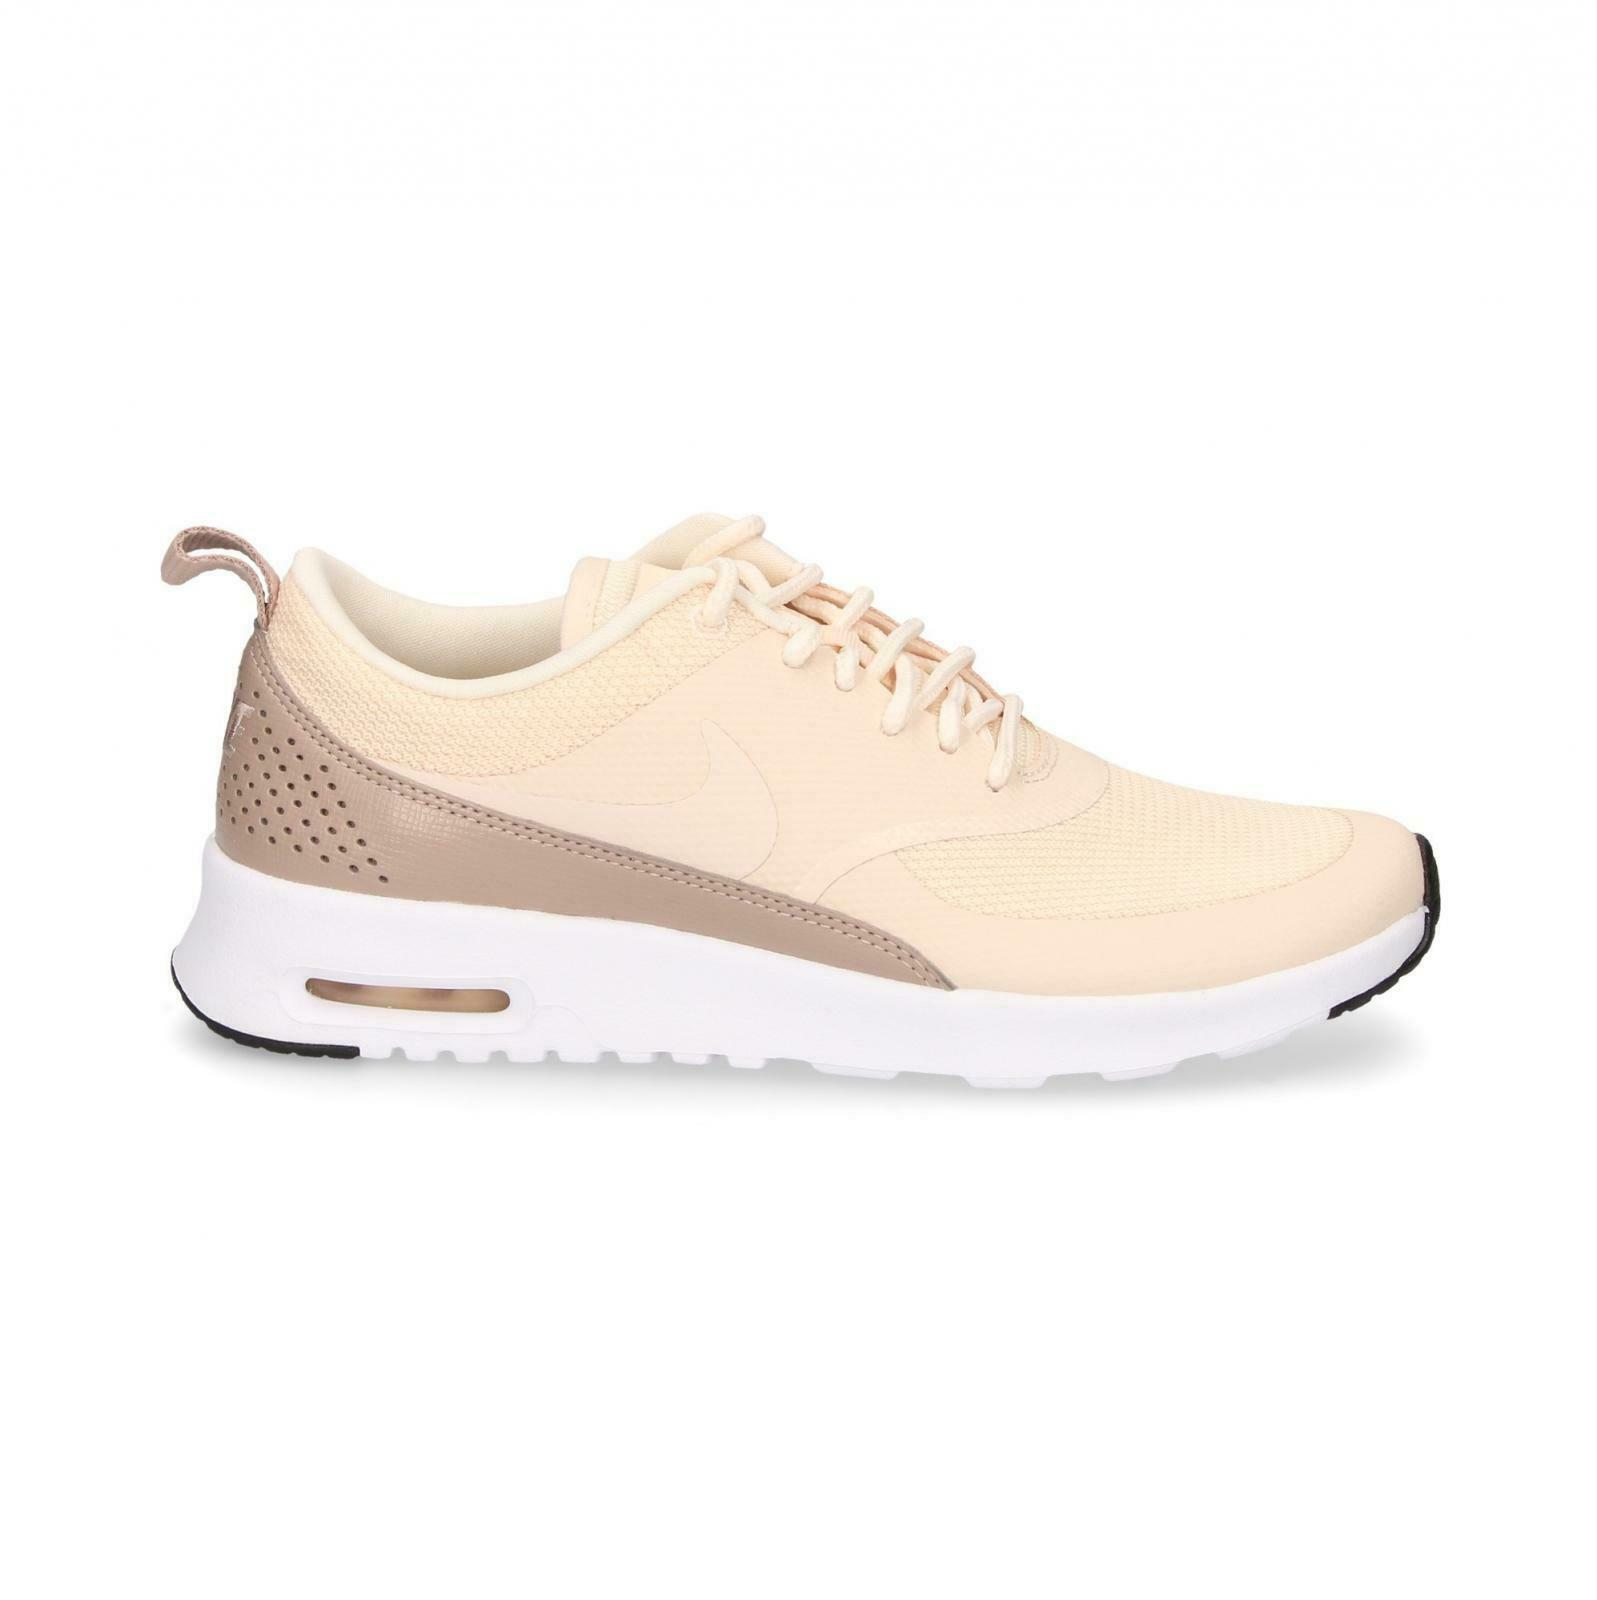 damen NIKE AIR MAX THEA Guava Ice Trainers 599409 804